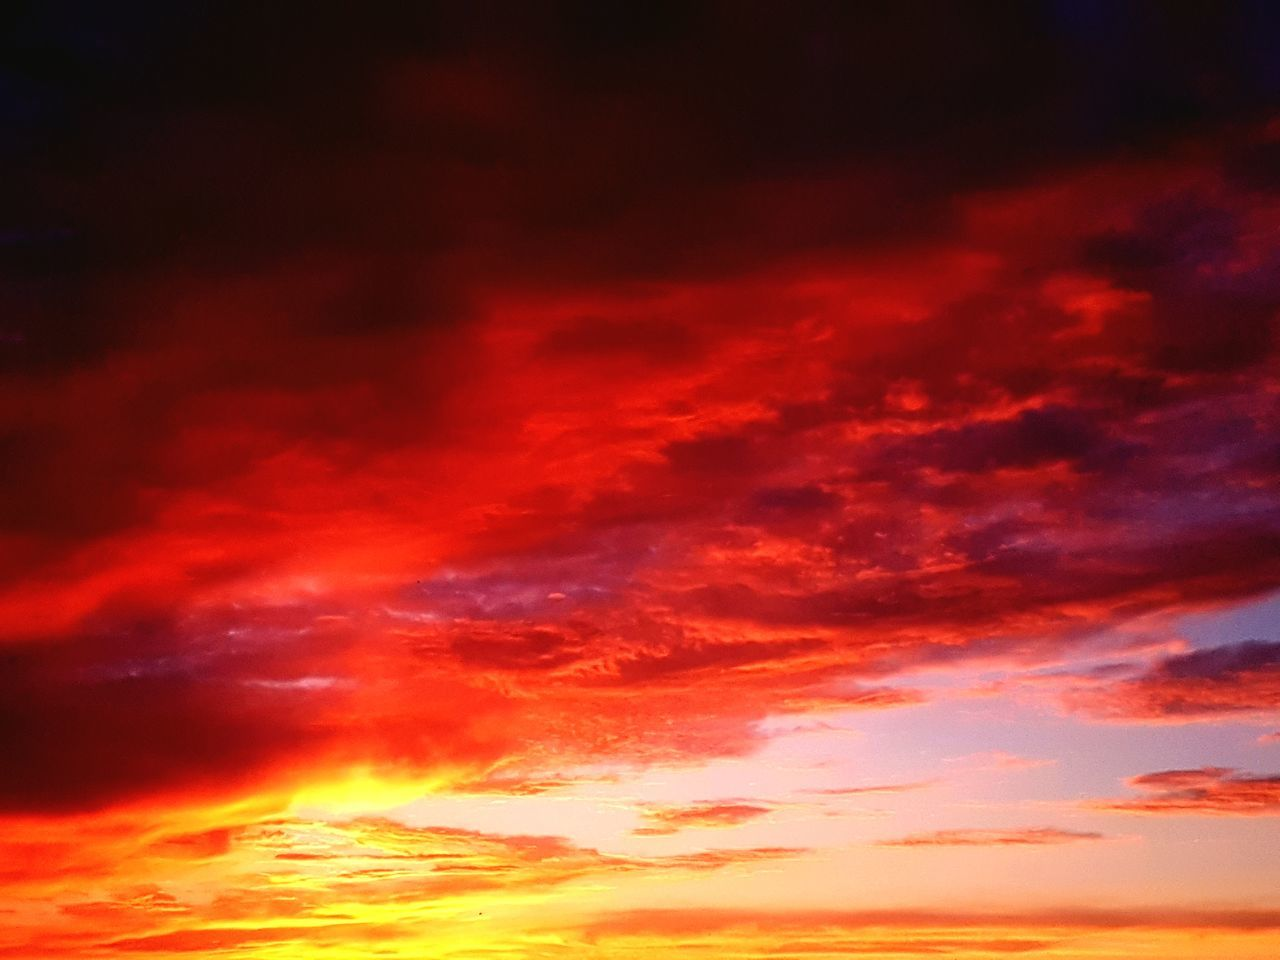 sunset, sky, beauty in nature, scenics, nature, cloud - sky, dramatic sky, orange color, tranquil scene, red, tranquility, no people, outdoors, night, abstract, sky only, backgrounds, multi colored, illuminated